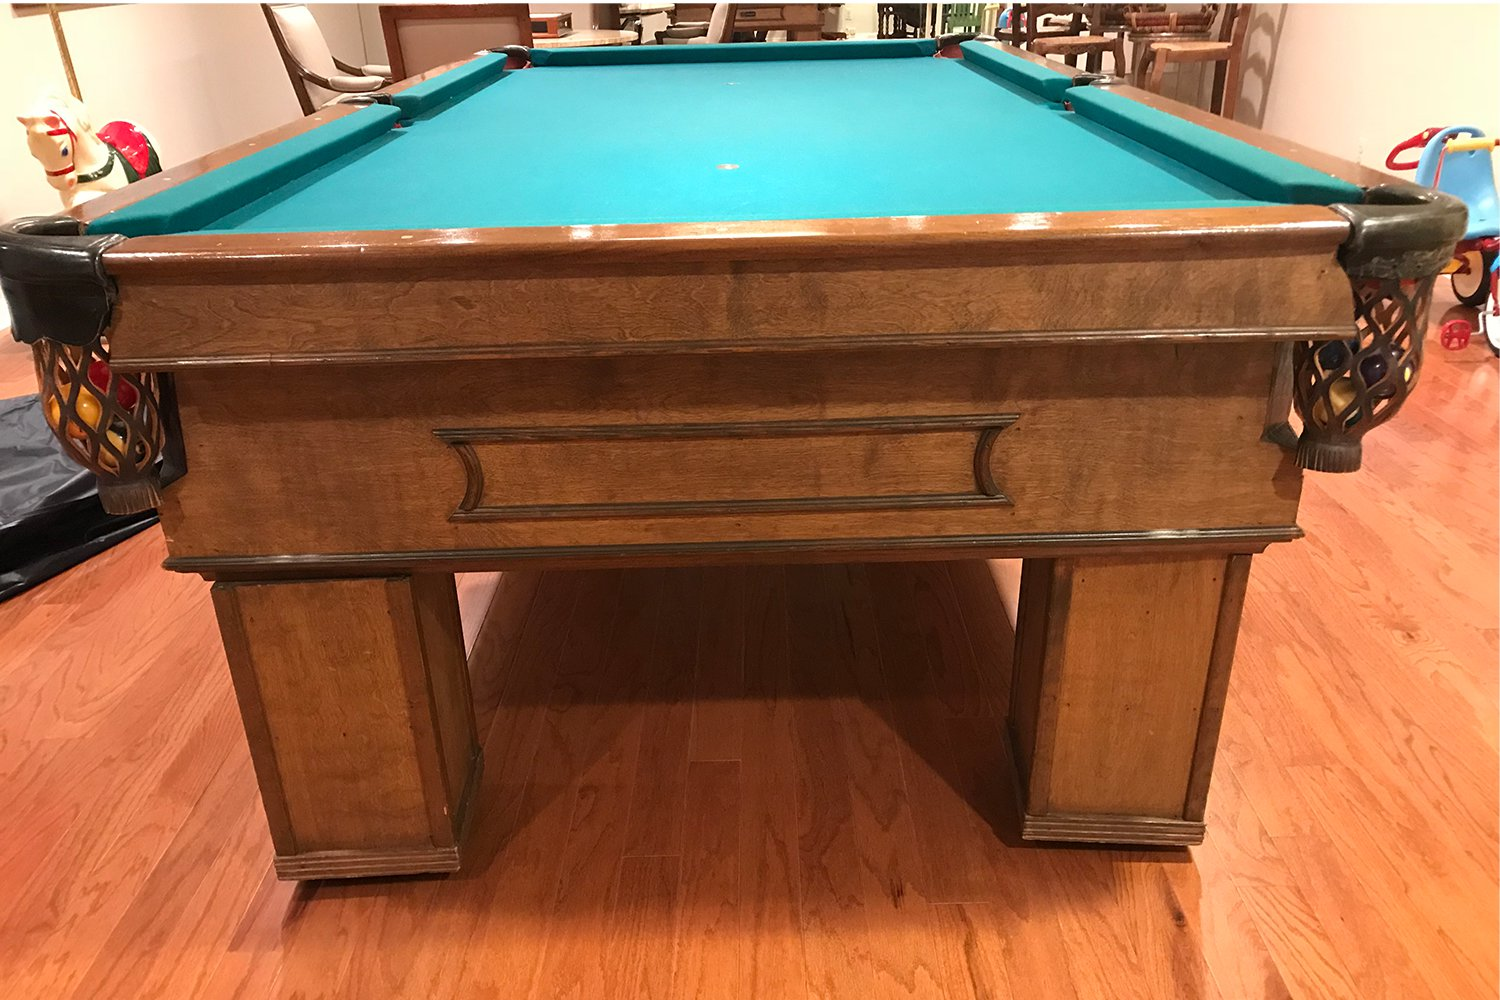 PreOwned Pool Tables Game Room Furniture - Nearest bar with pool table